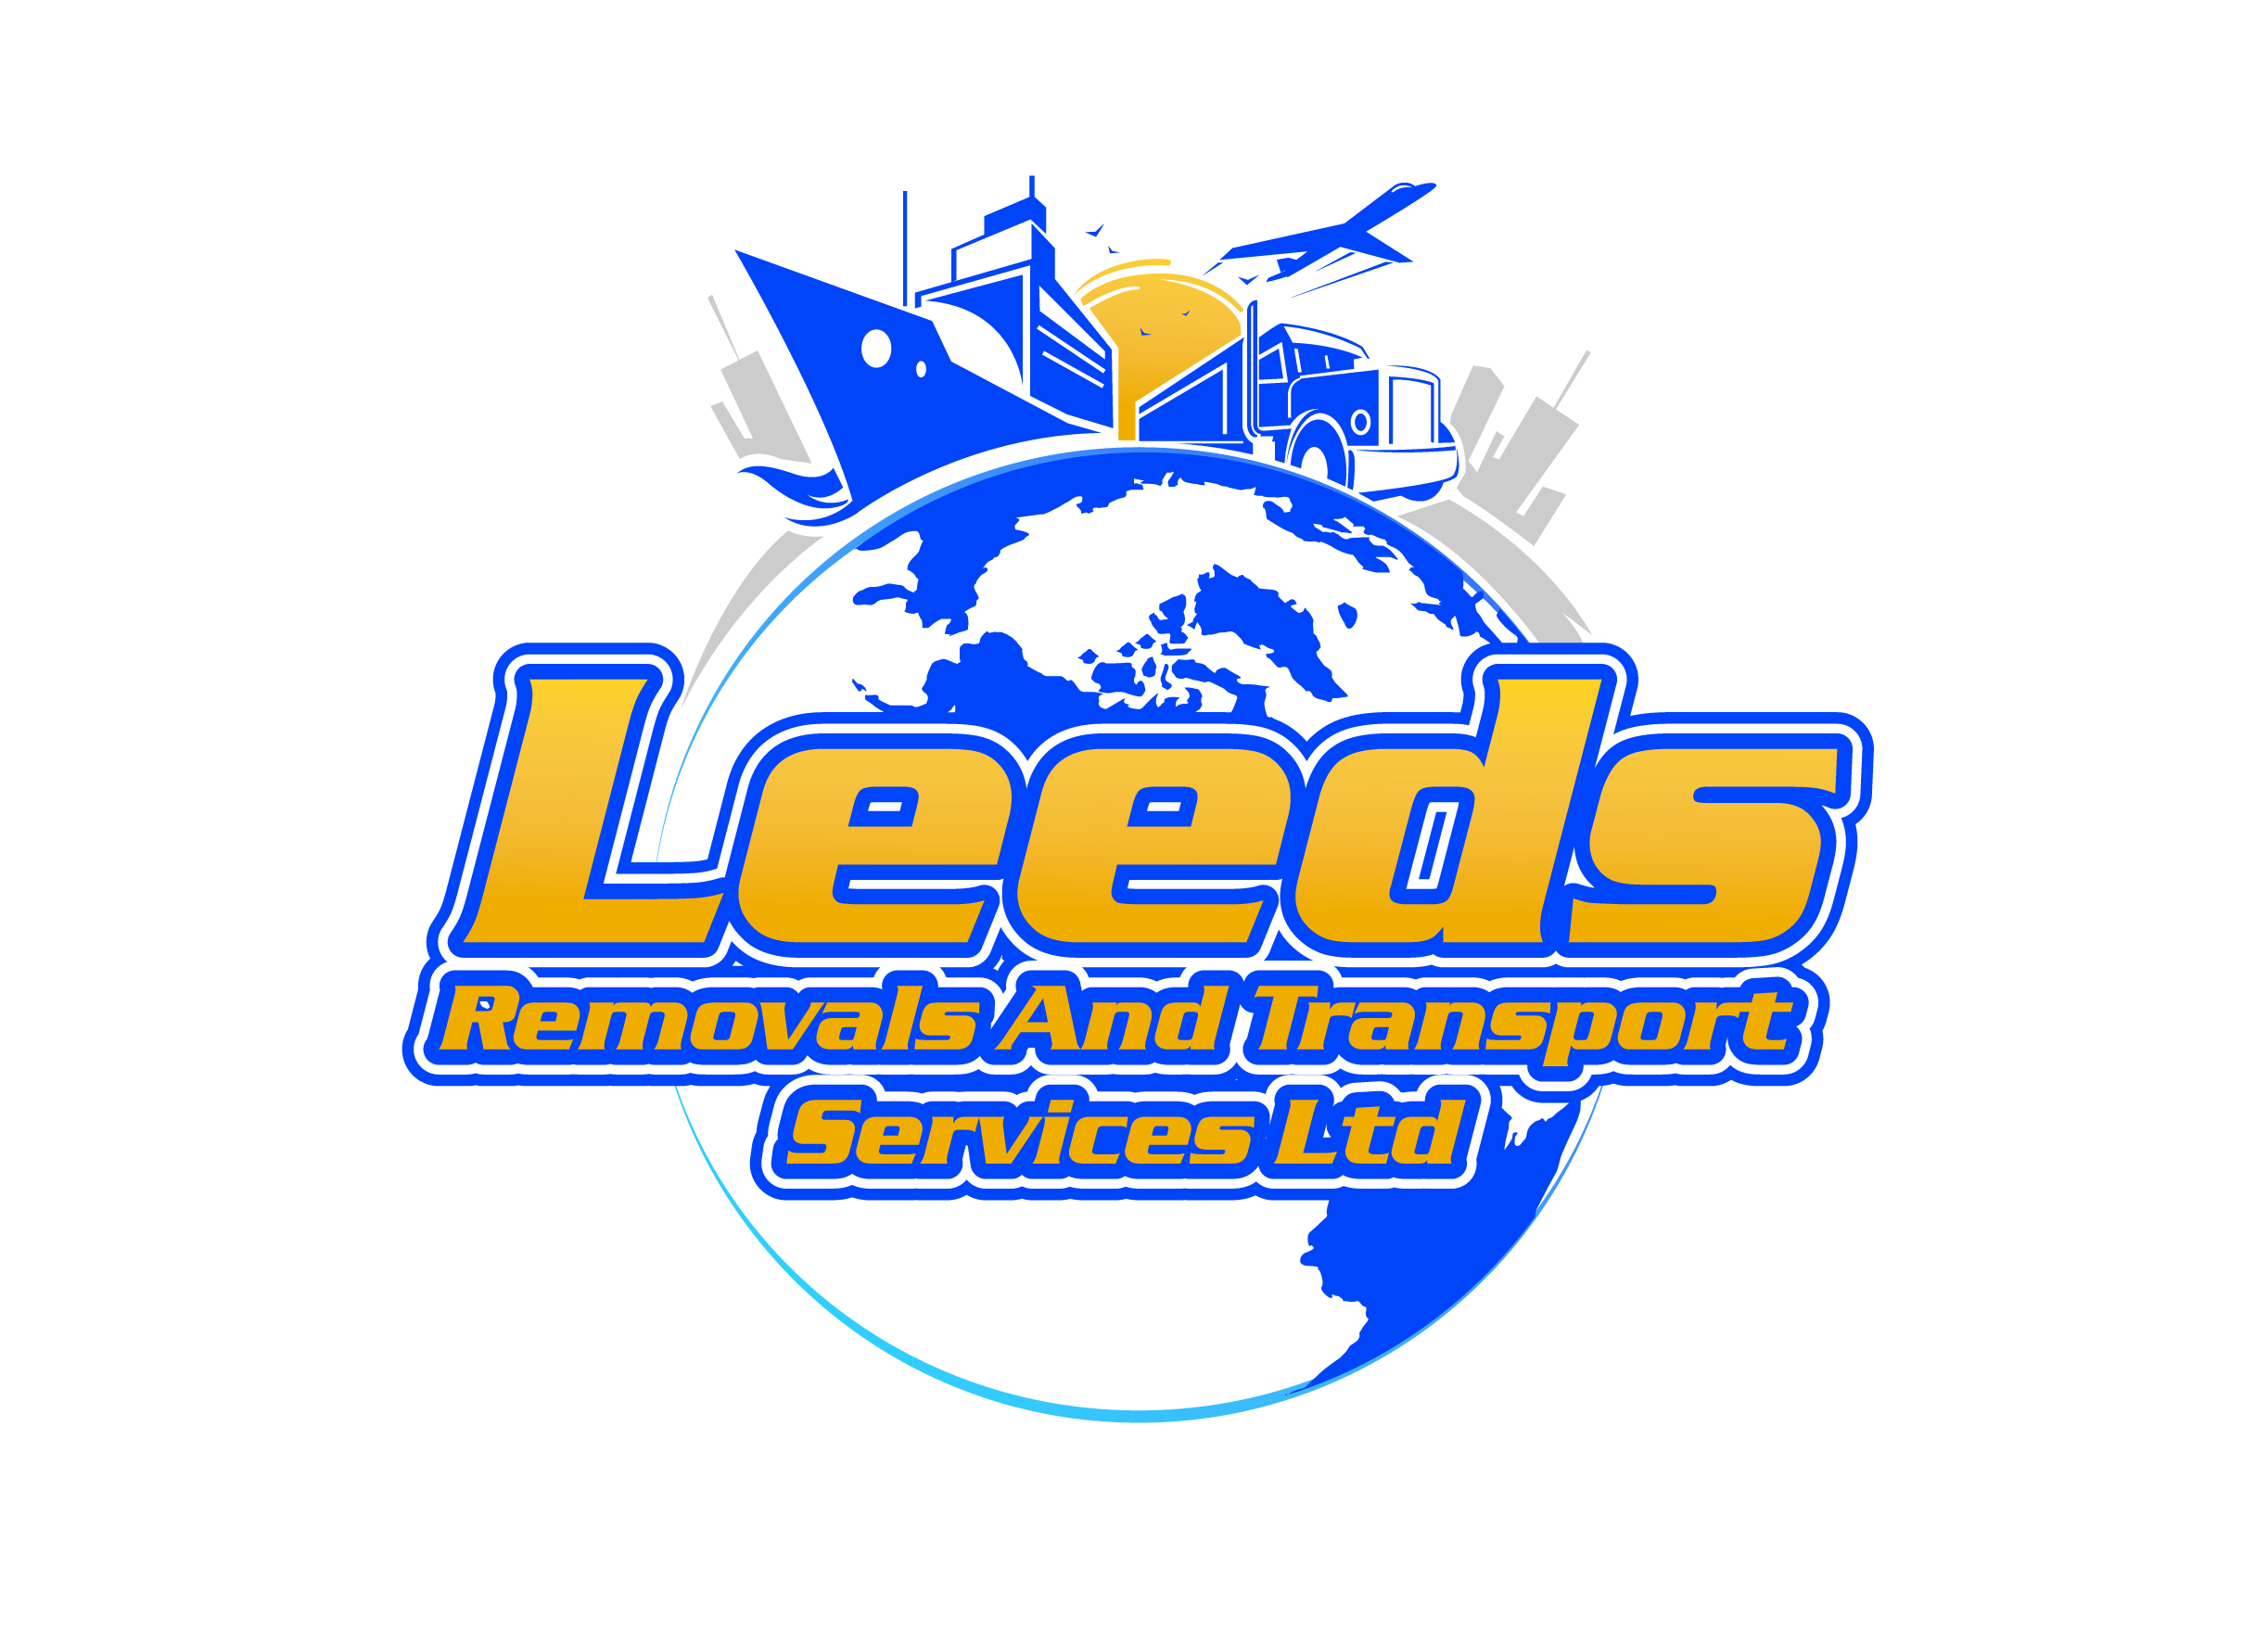 Leeds Removals And Transport Services Ltd